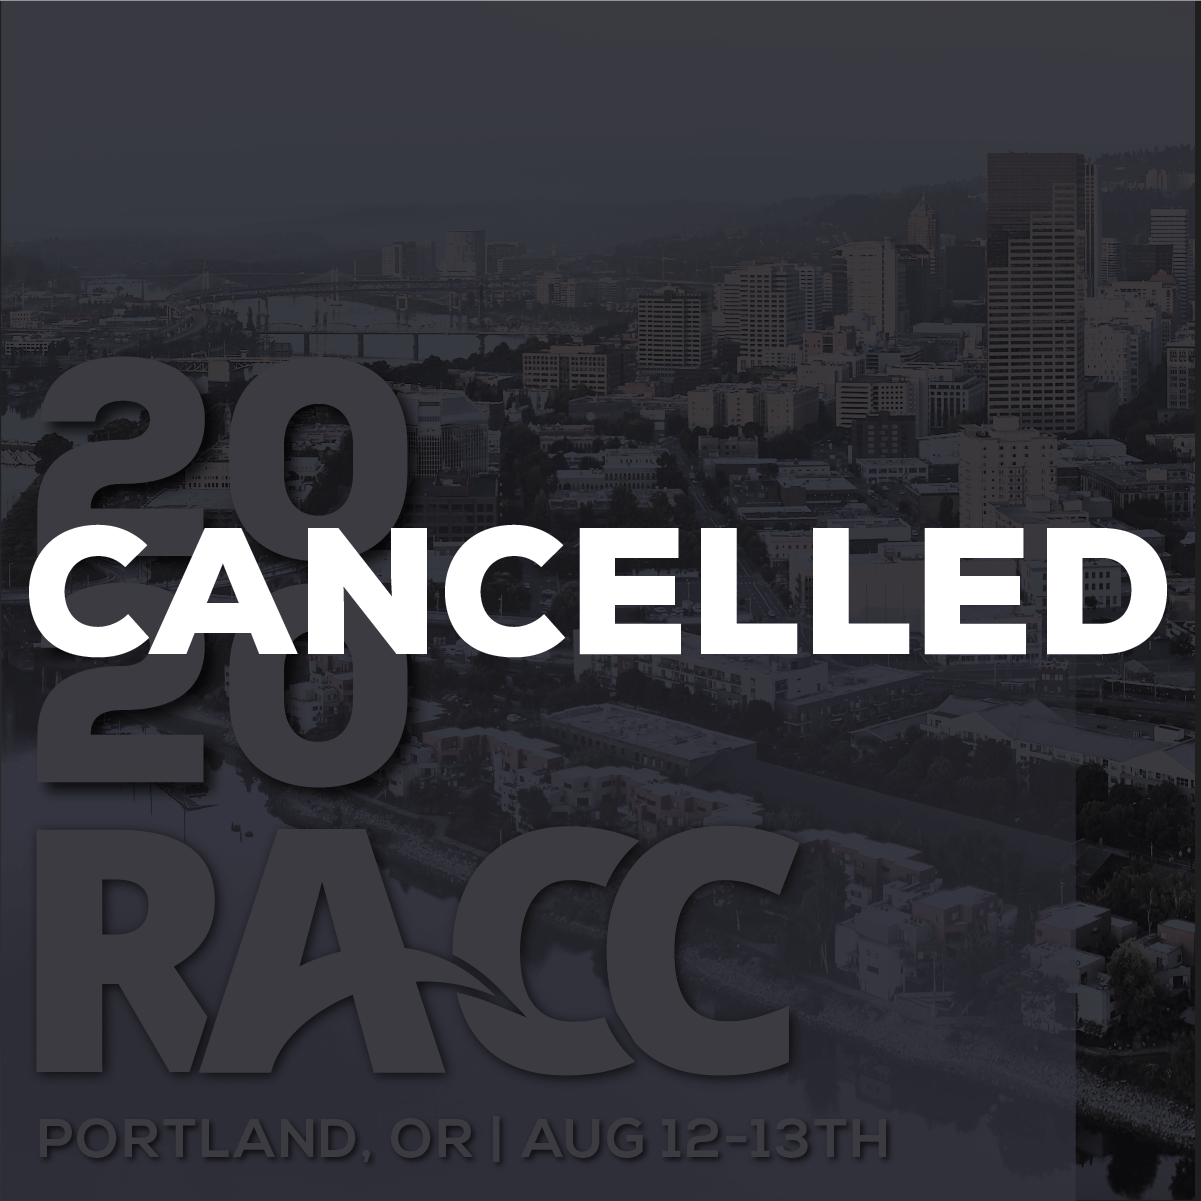 Cancelled RACC-02